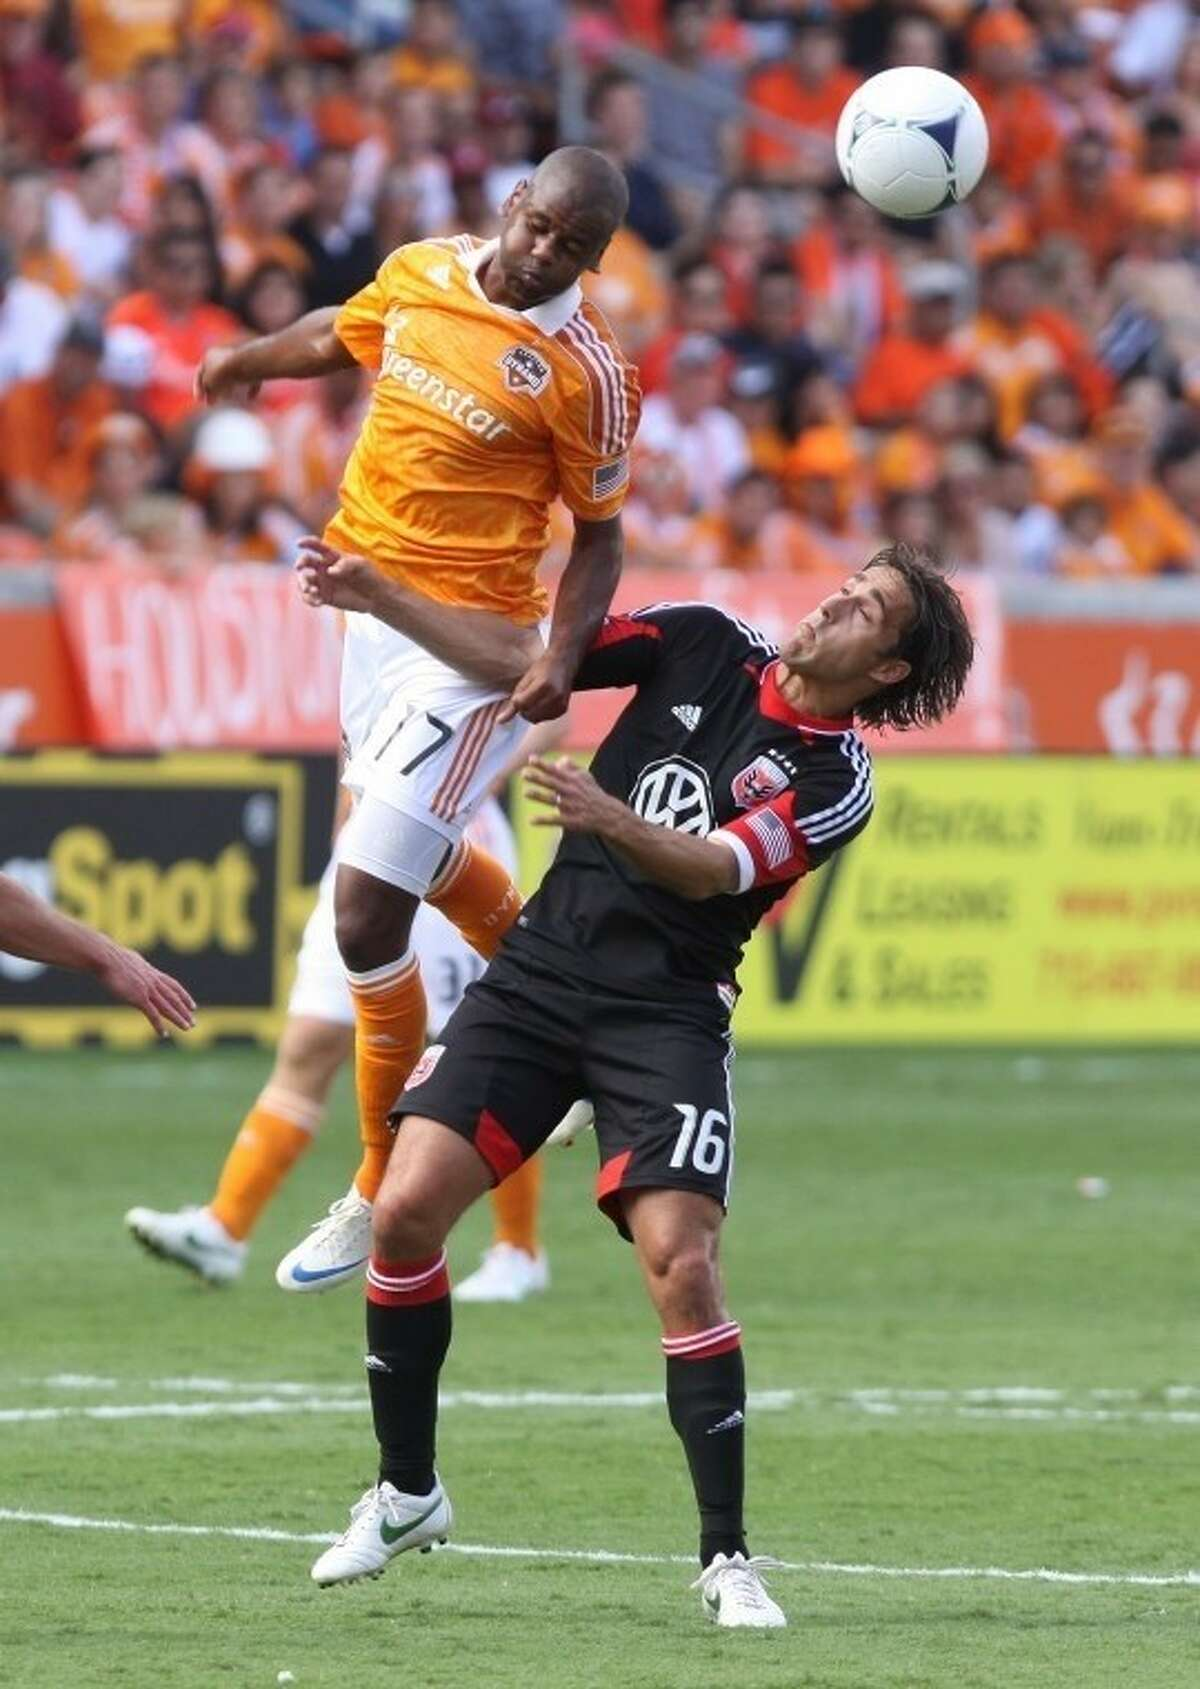 The Houston Dynamo trials are approaching fast in September.